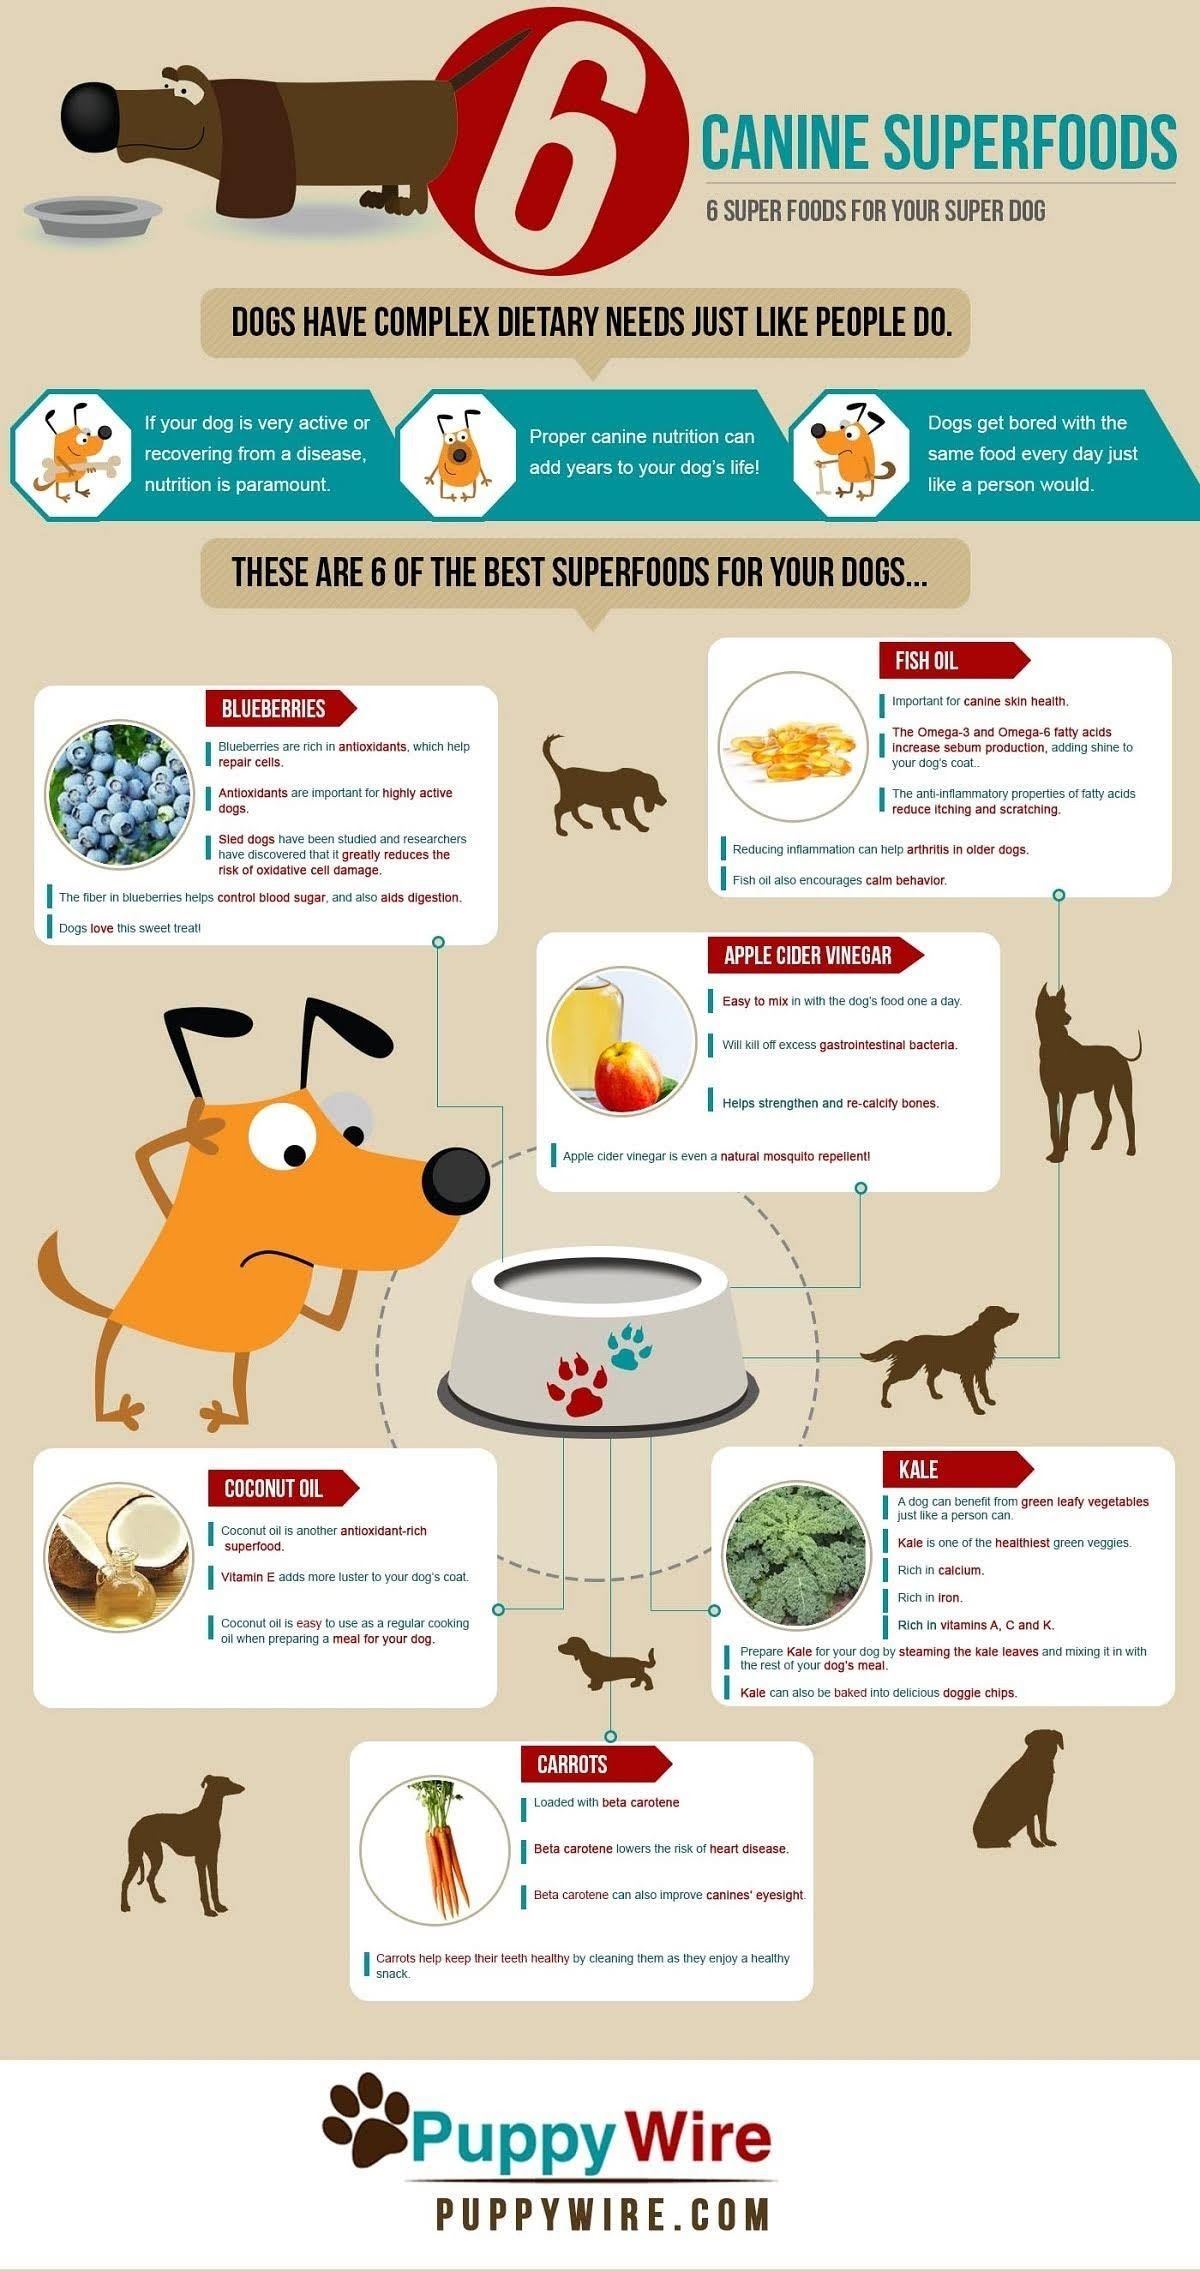 Top 6 Superfoods for Your Super Dog #infographic